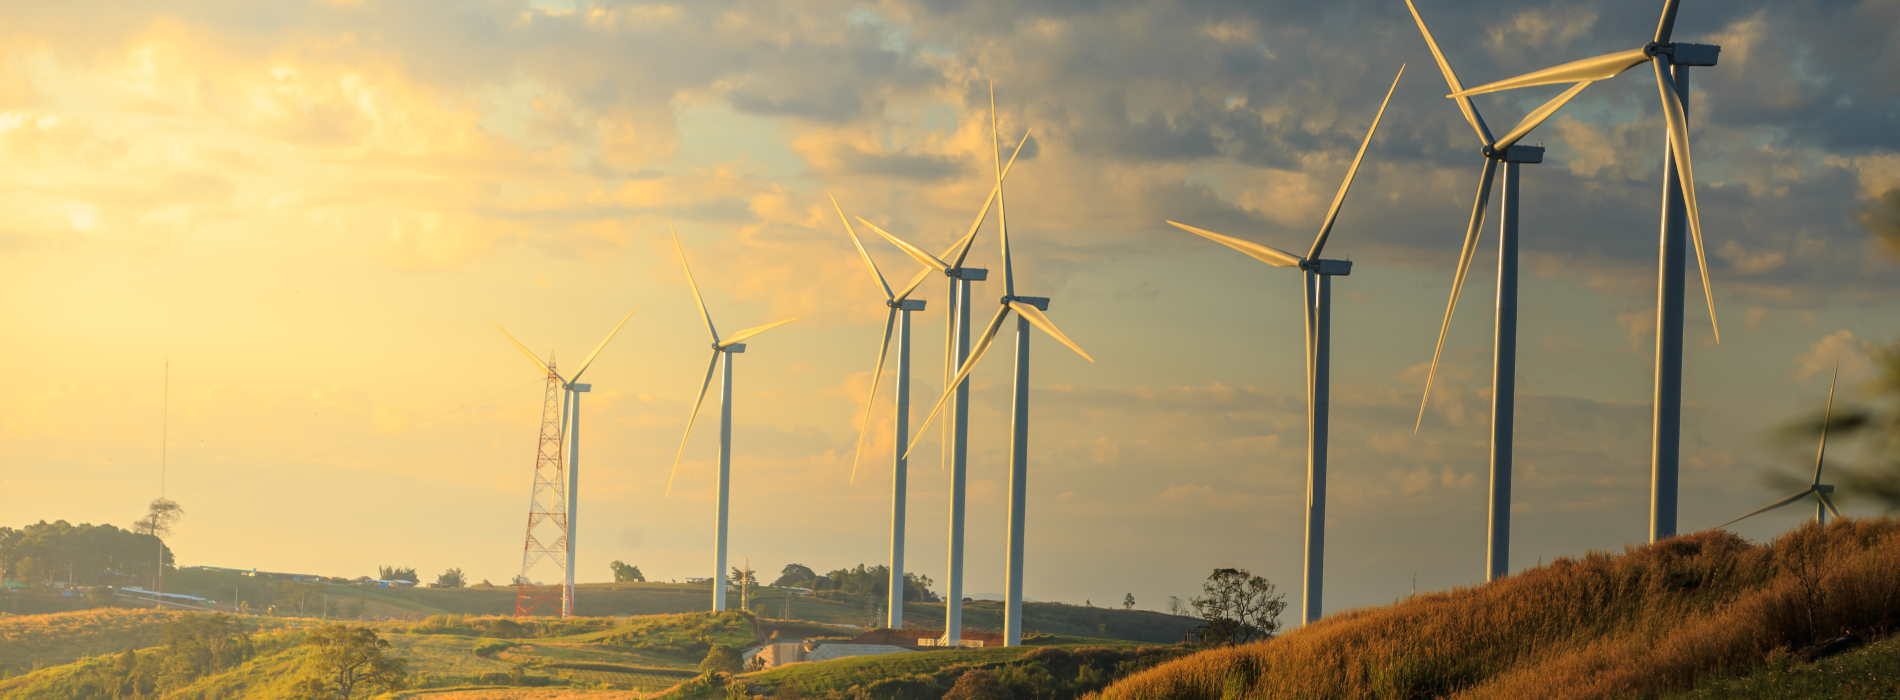 Header image: Renewable energy - source Shutterstock